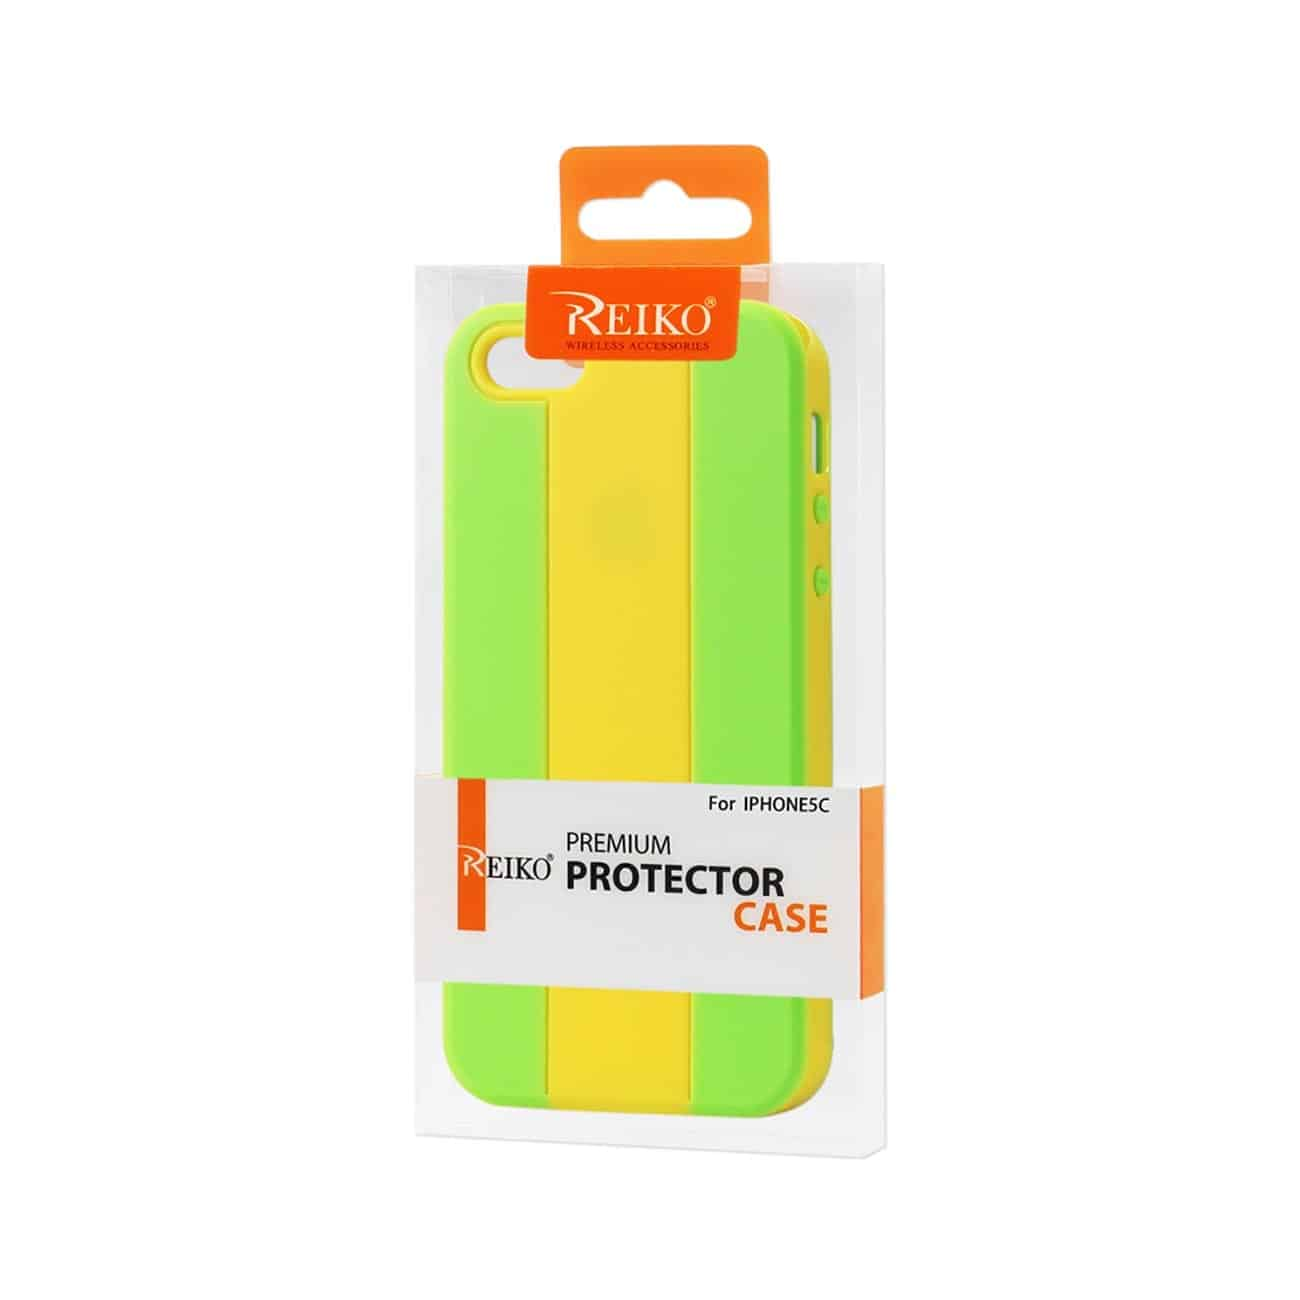 IPHONE 5C STRIPED CASE IN YELLOW GREY